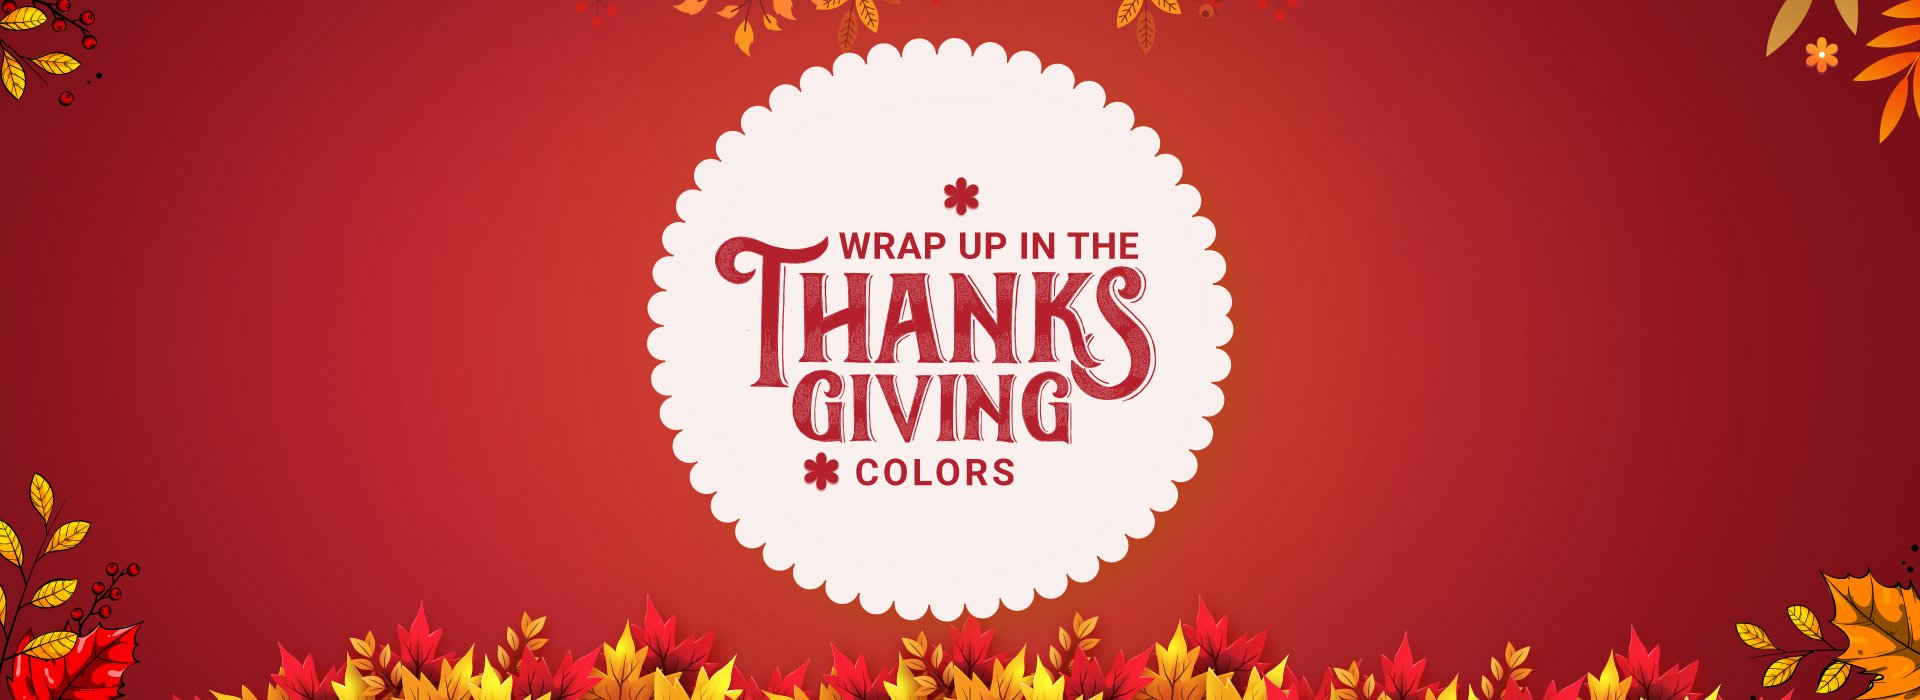 Wrap up in the Thanksgiving colors